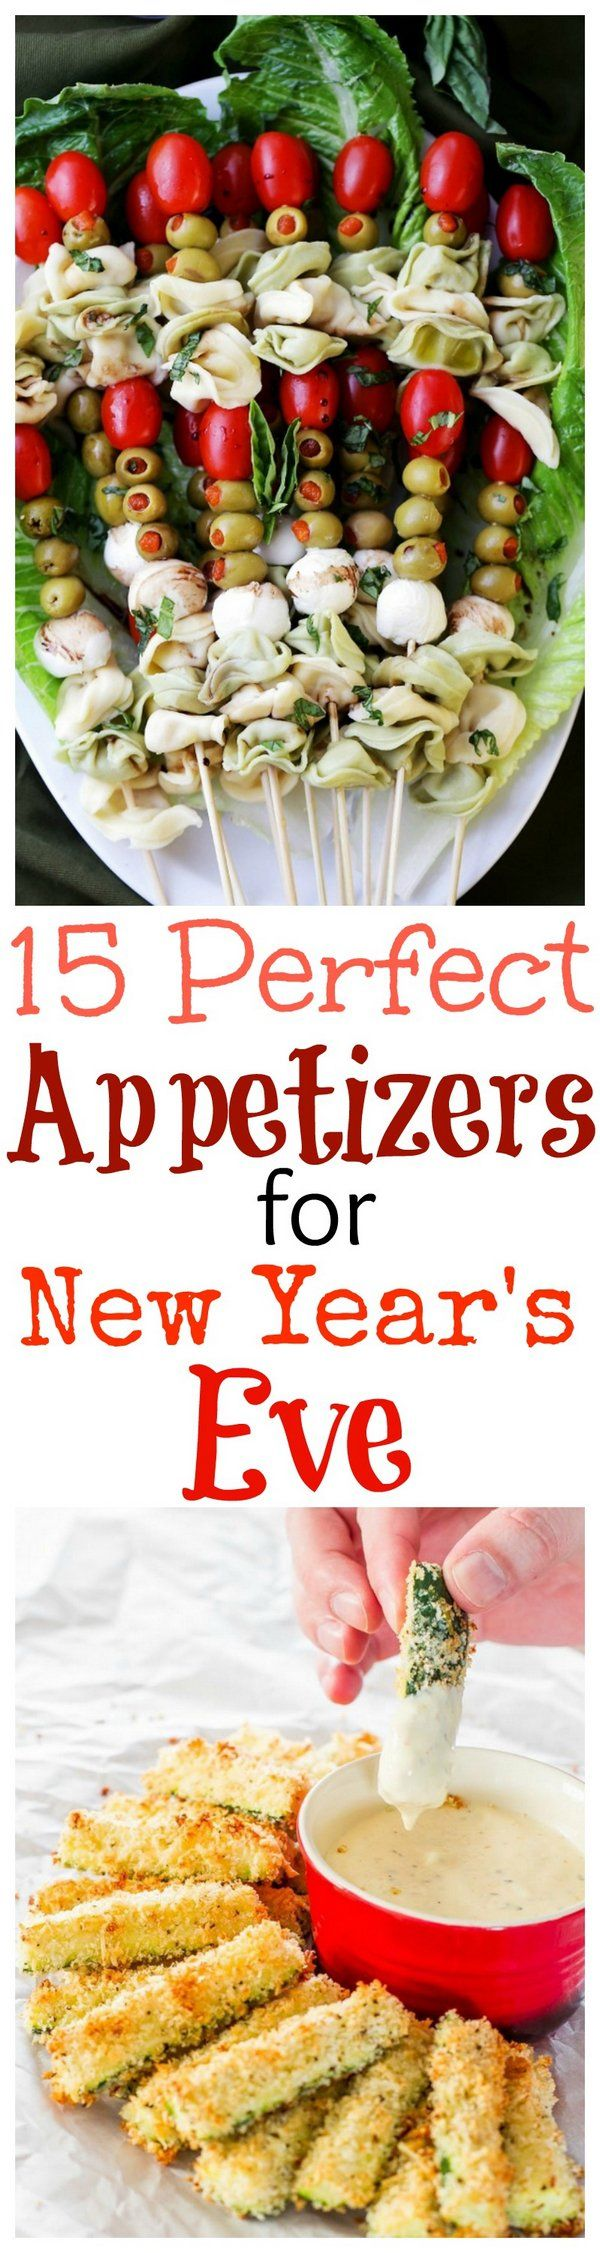 15 Perfect Appetizers to Help You Celebrate on New Year's Eve.